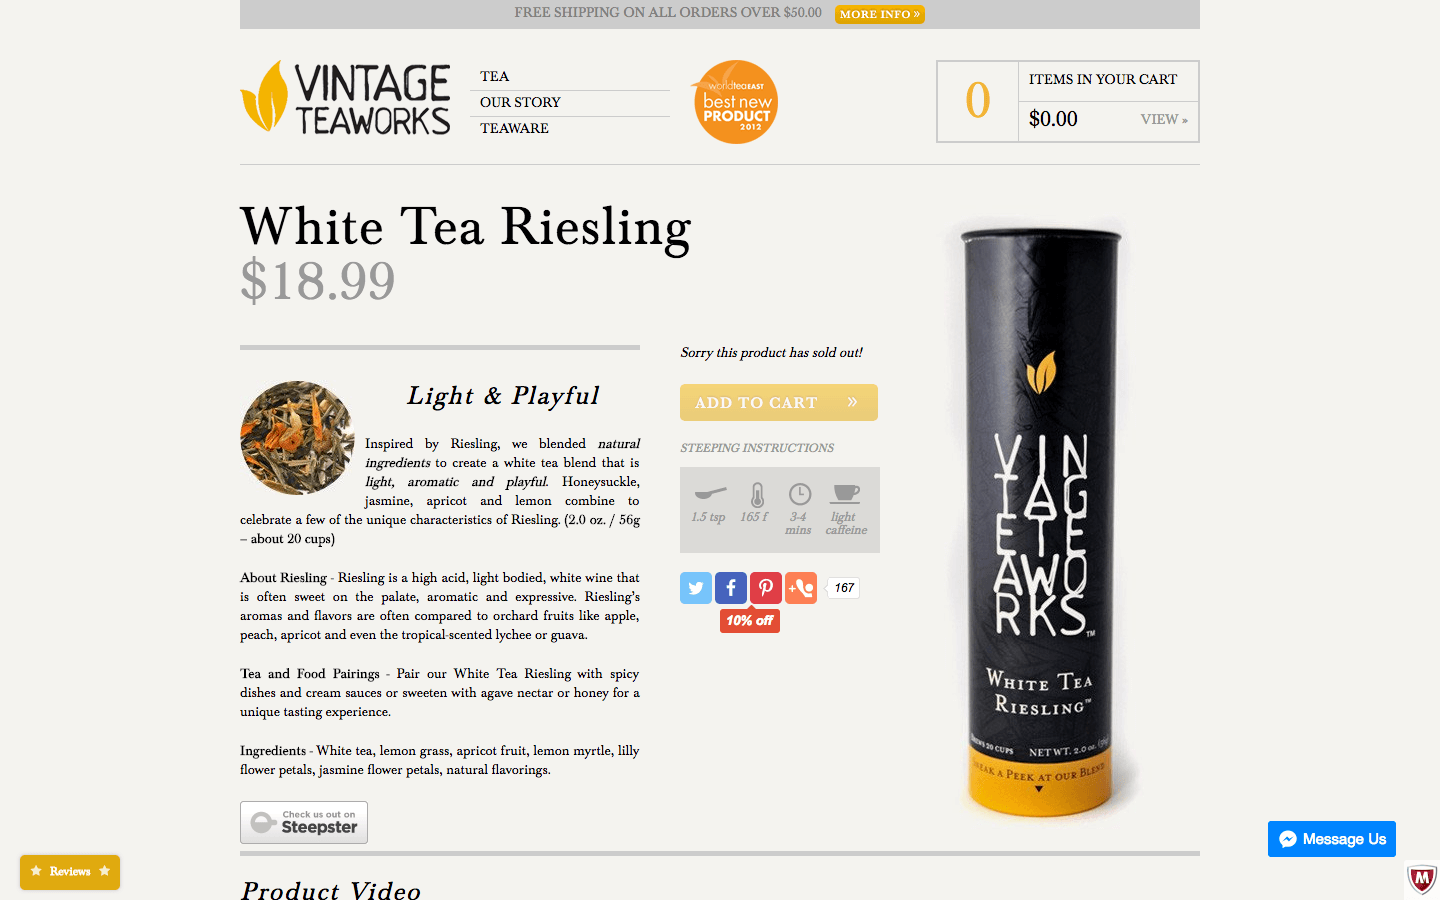 Vintage Teaworks social sharing on product page